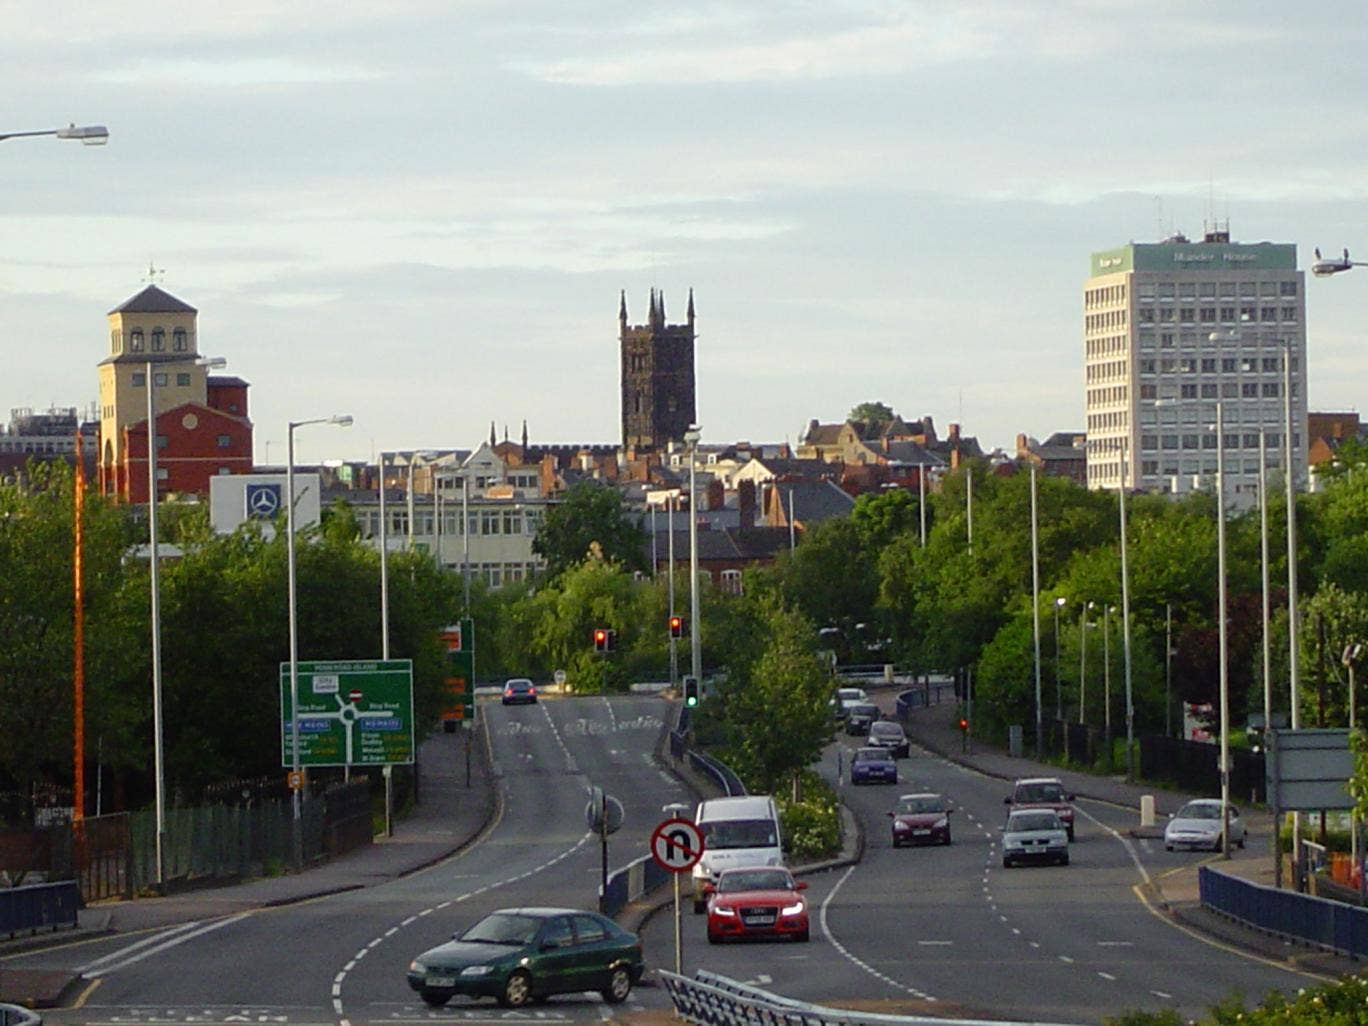 Wolverhampton City Council has announced it is to lose 2,000 jobs, hundreds more than expected, after its central Government grant was cut by half